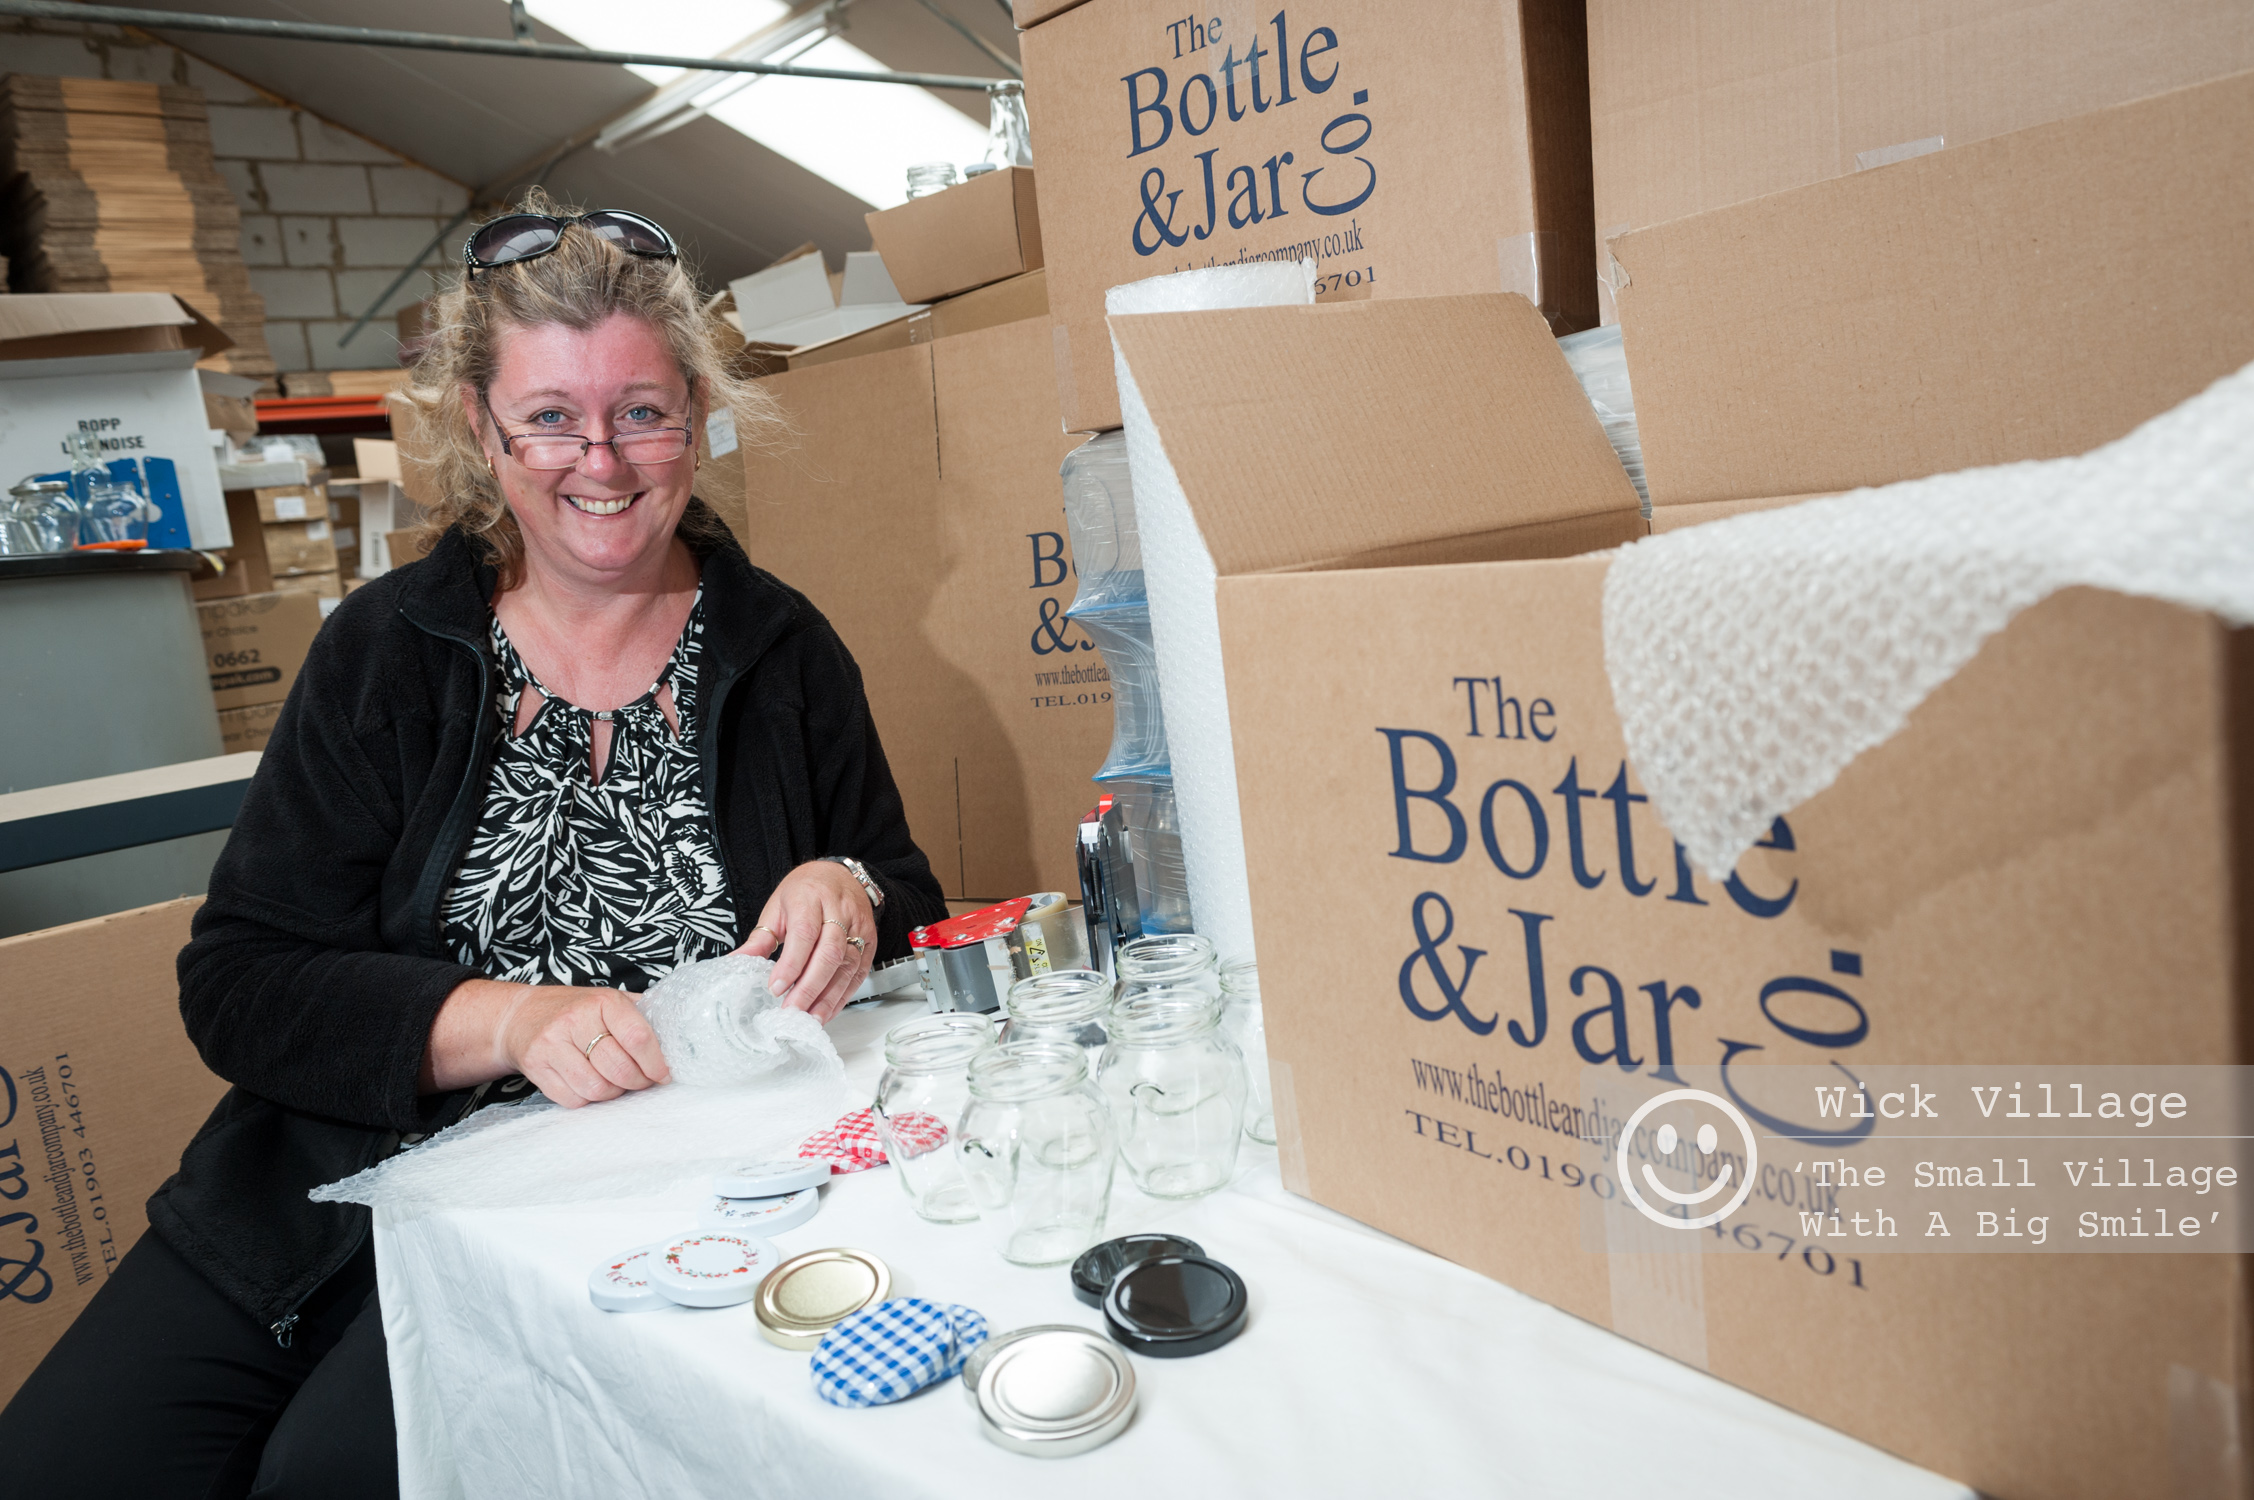 Kathy Vowles from The Bottle & Jar Company prepares an order of jars for a customer. Photo © Scott Ramsey/Wick Village Traders Association.